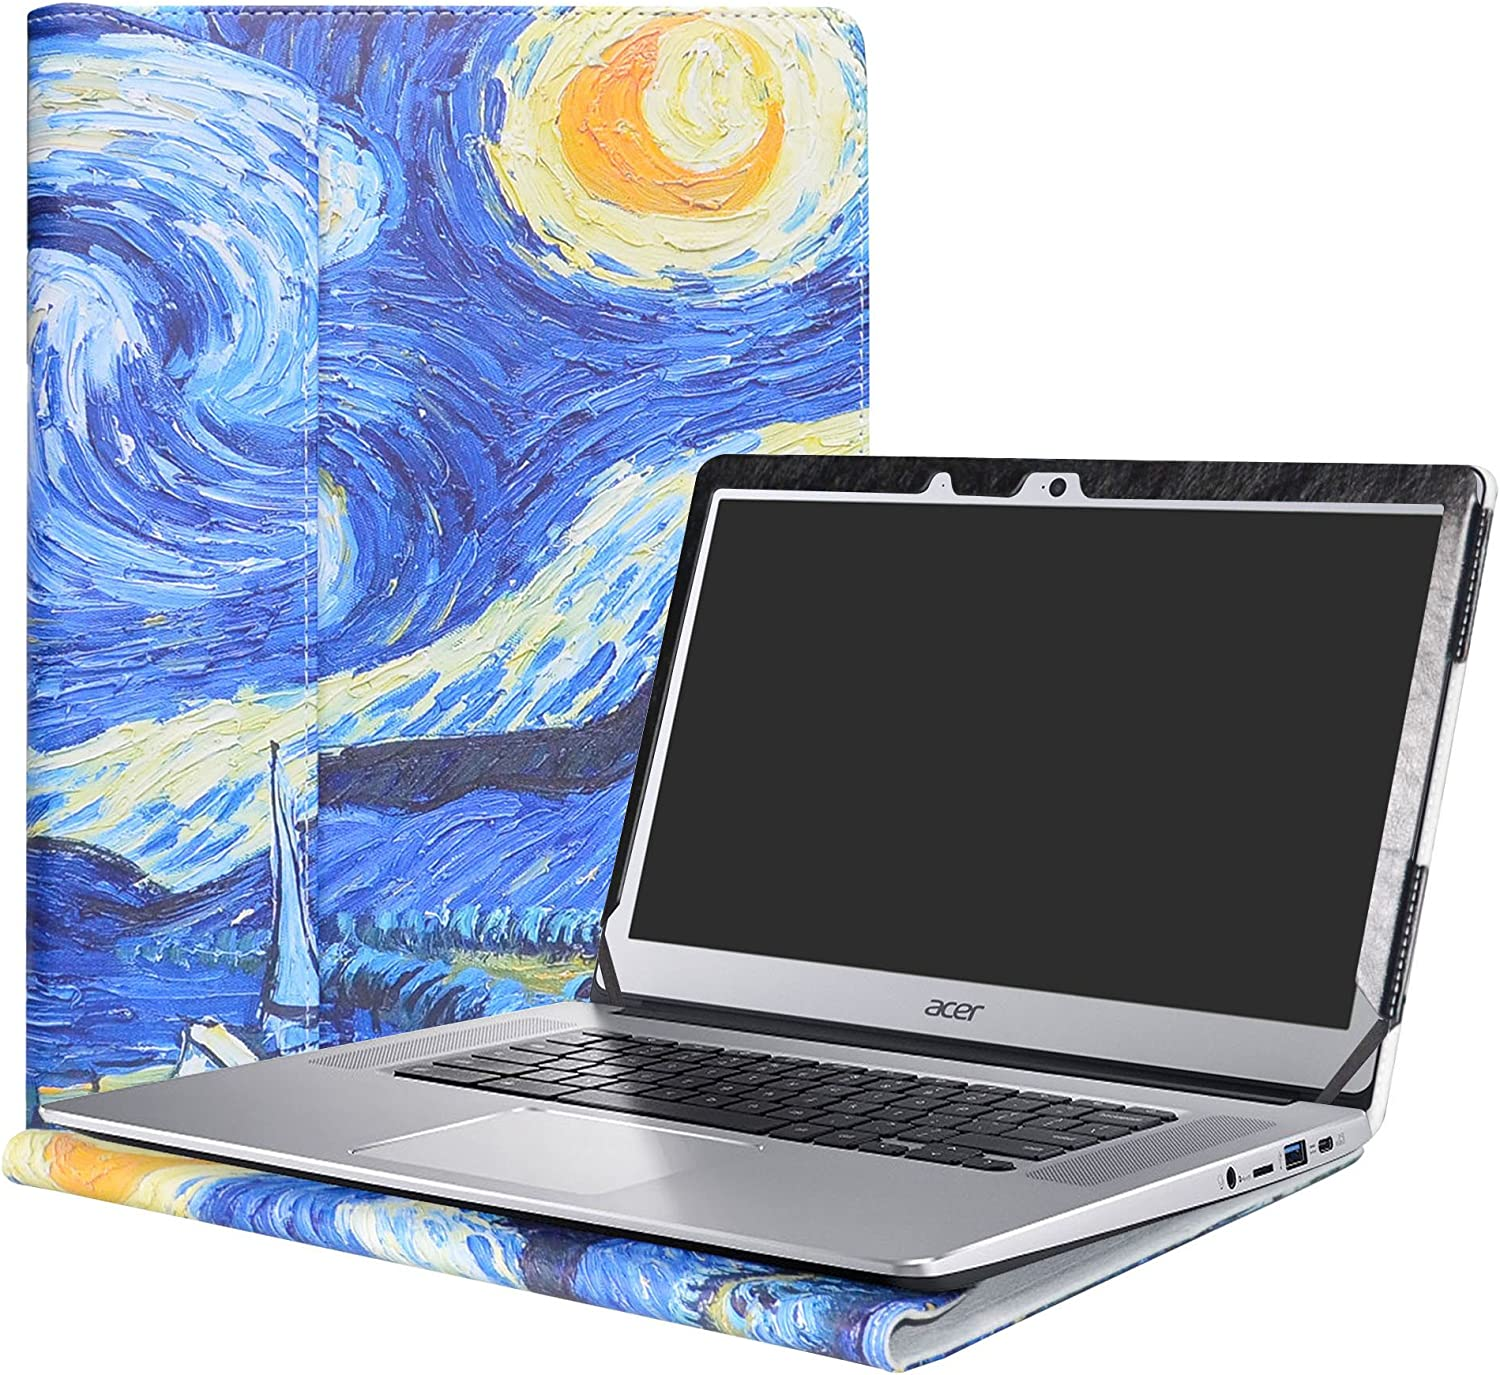 "Alapmk Protective Case Cover for 15.6"" Acer Chromebook 15 CB515-1HT Series Laptop (Such as CB515-1HT-P39B,NOT Compatible with Older C910/CB5-571/CB3-531 Series),Starry Night"